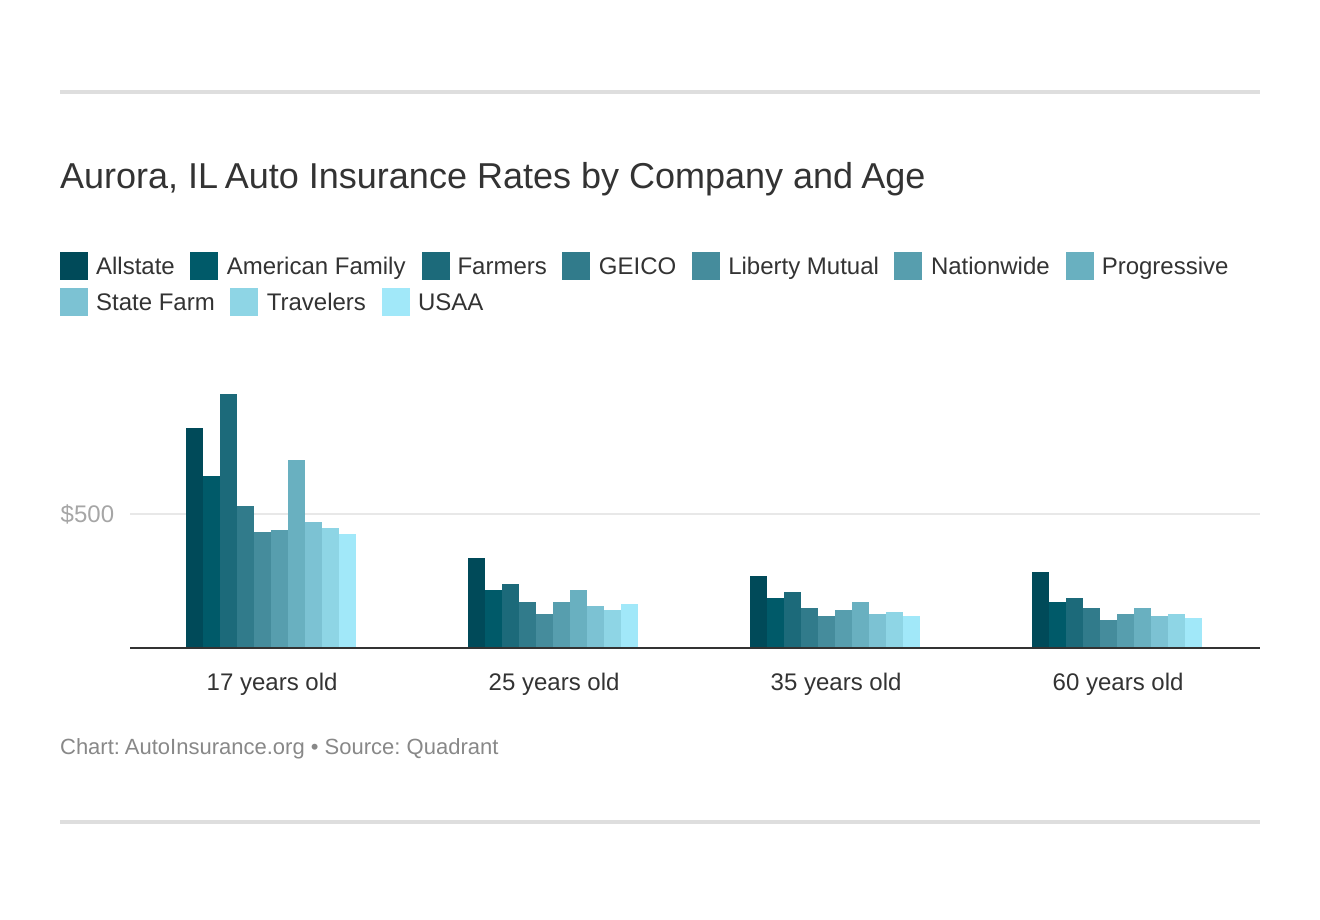 Aurora, IL Auto Insurance Rates by Company and Age